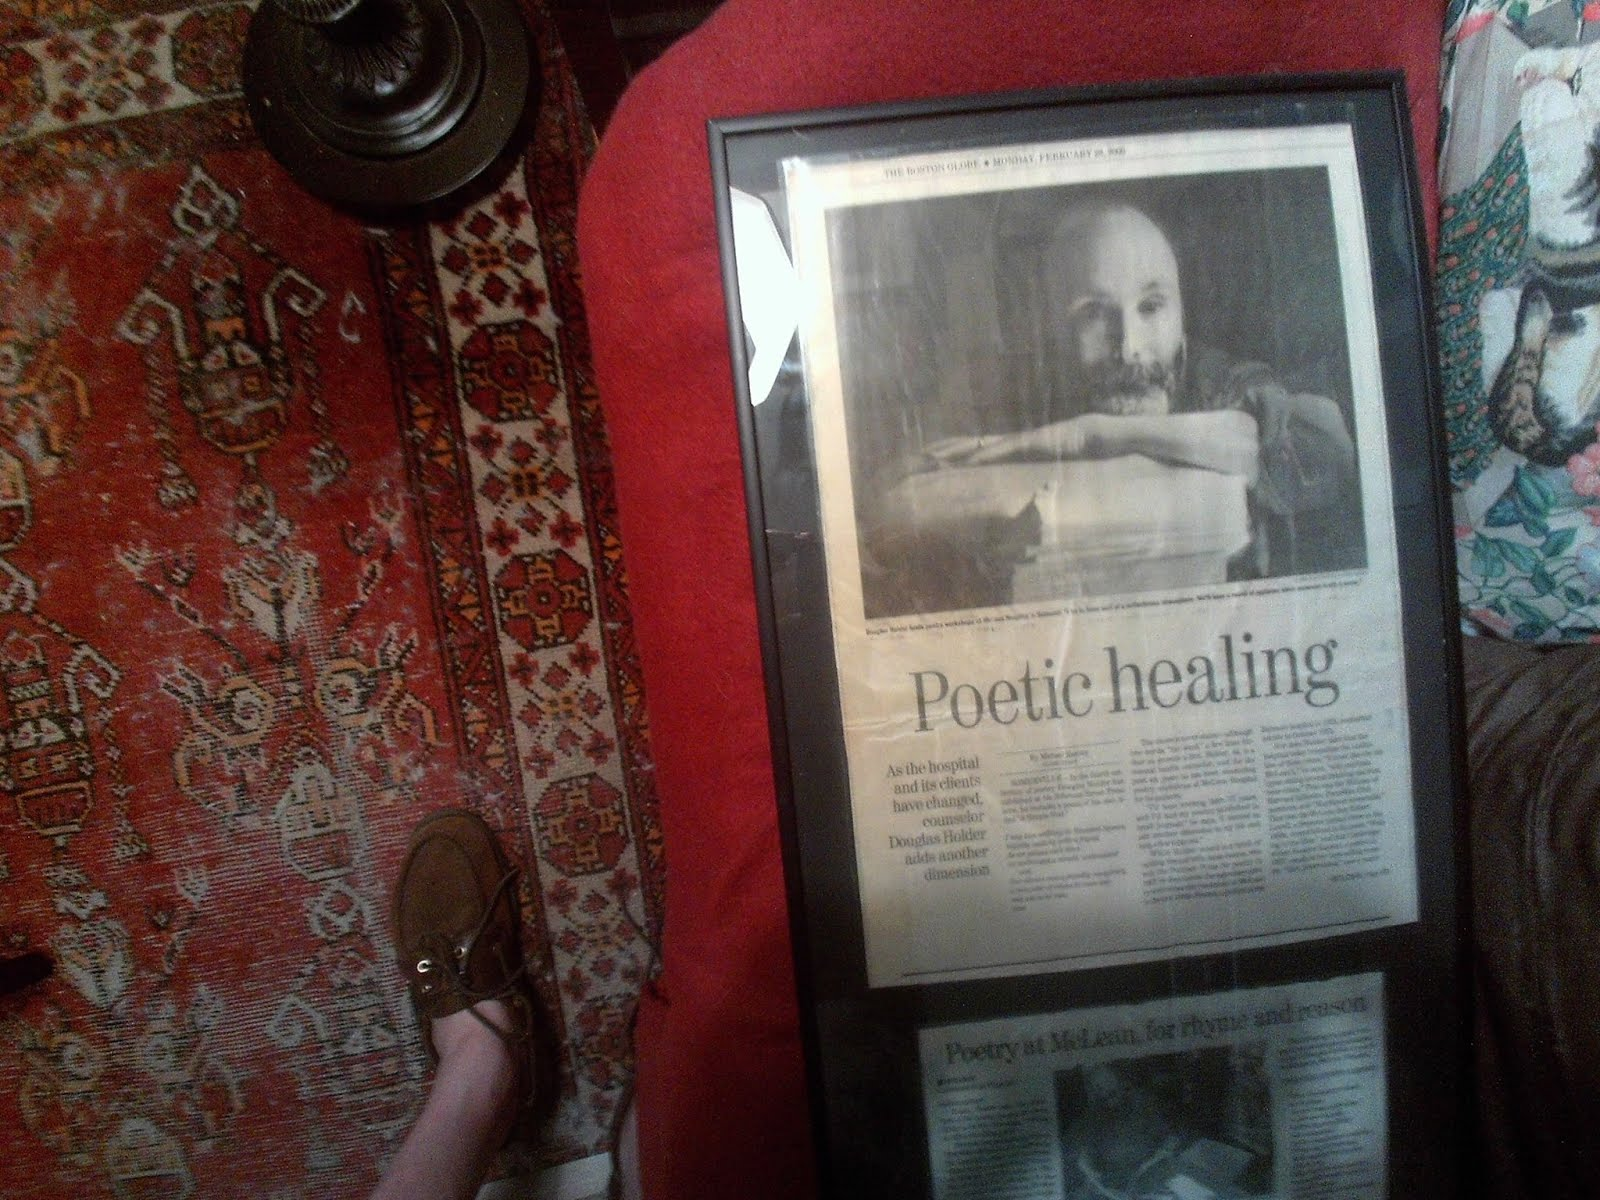 Poetic Healing at McLean Hospital: Doug Holder interviewed by Boston Globe Feb. 2000